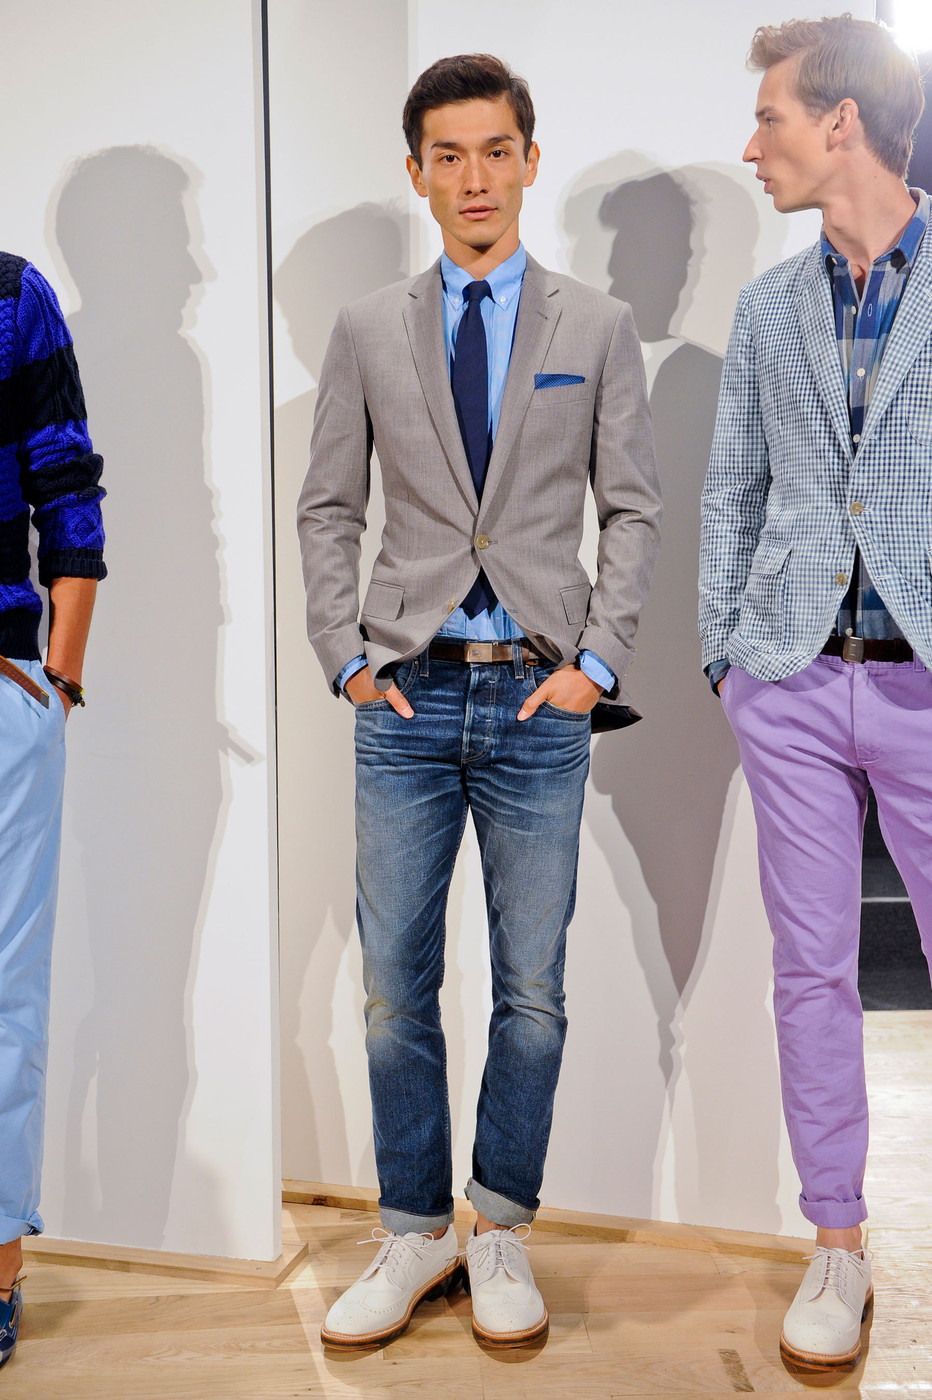 J Crew Mens At New York Fashion Week Spring 2013 Livingly